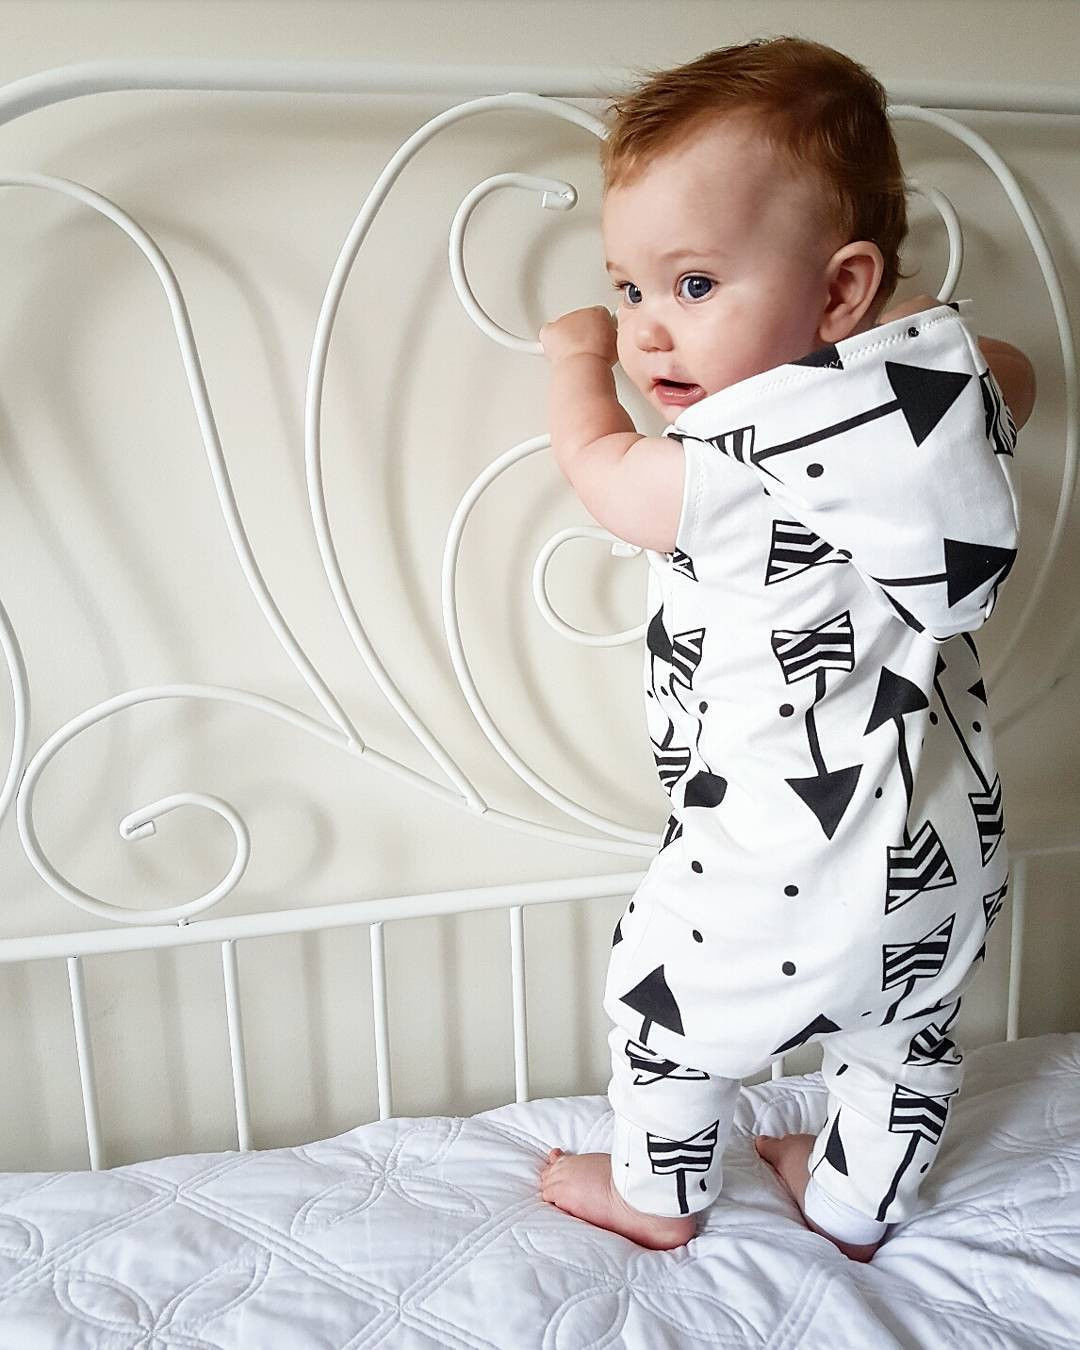 Infant-Baby-Boy-Kid-Clothing-Hooded-Sleeveless-Romper-Arrow-Cute-Zipper-Jumpsuit-Outfits-Baby-Boys-Clothes-3